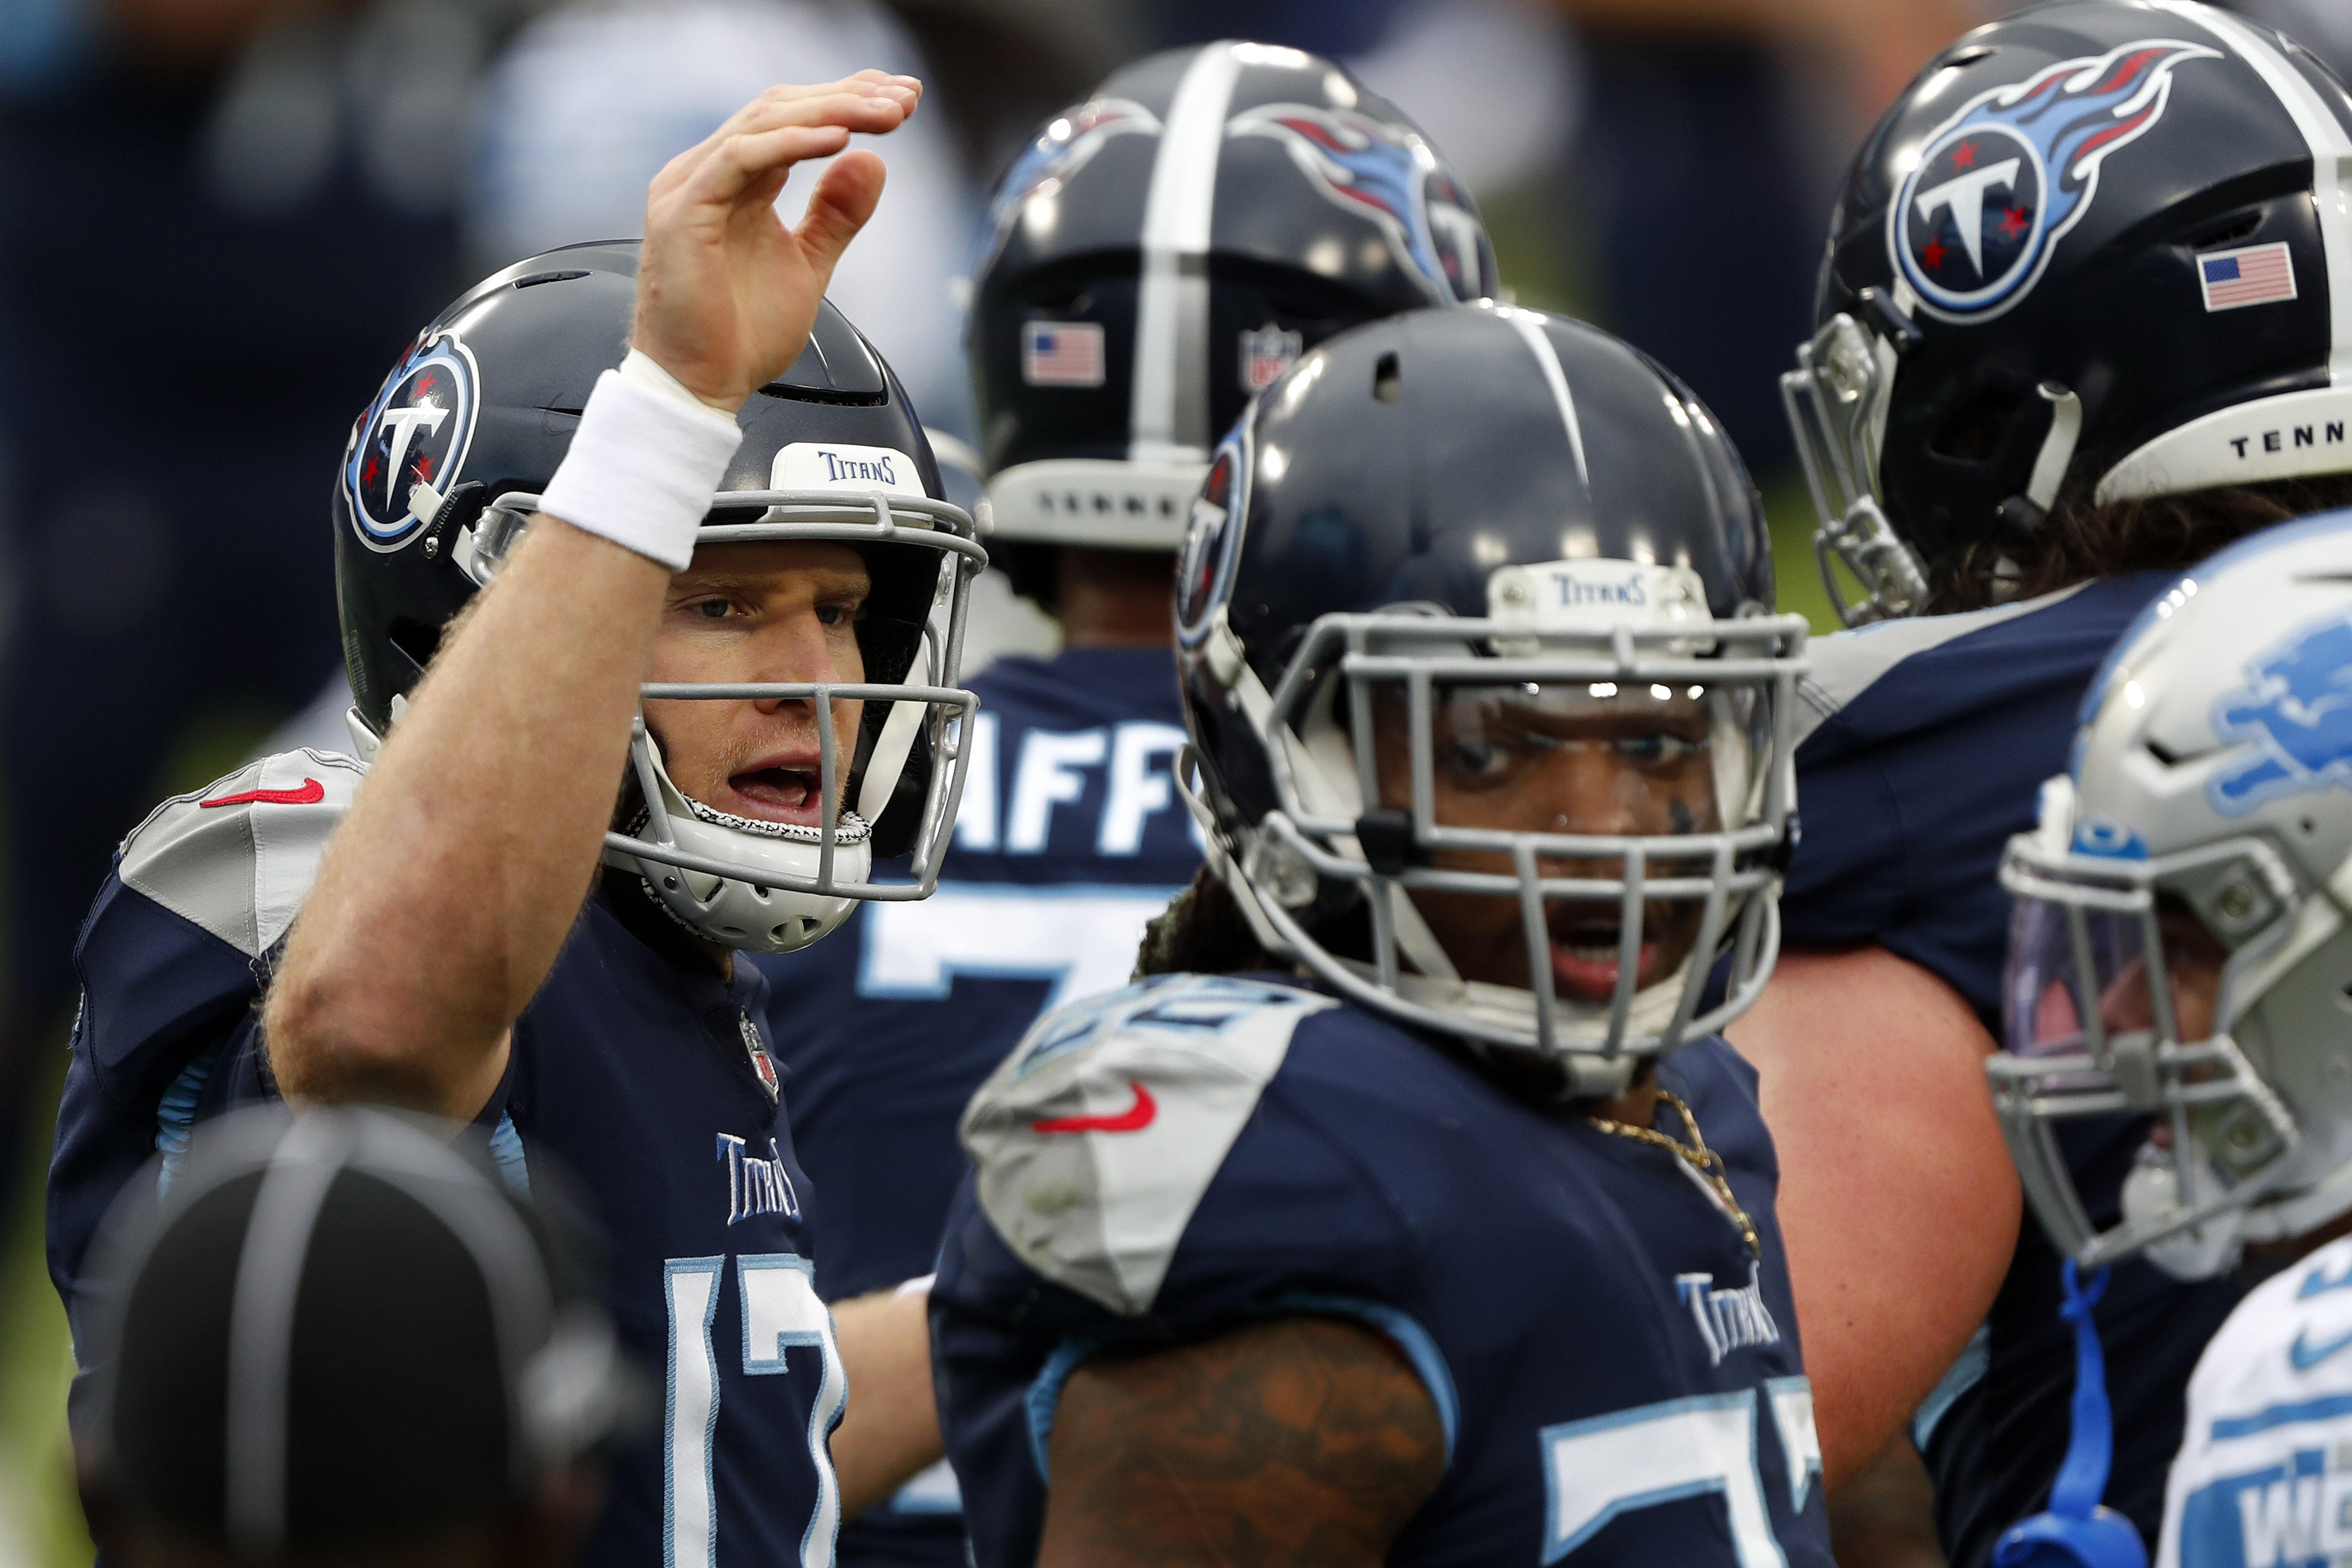 Quarterback Ryan Tannehill #17 and running back Derrick Henry #22 of the Tennessee Titans Detroit Lions huddle during the second quarter of the game at Nissan Stadium on December 20, 2020 in Nashville, Tennessee.